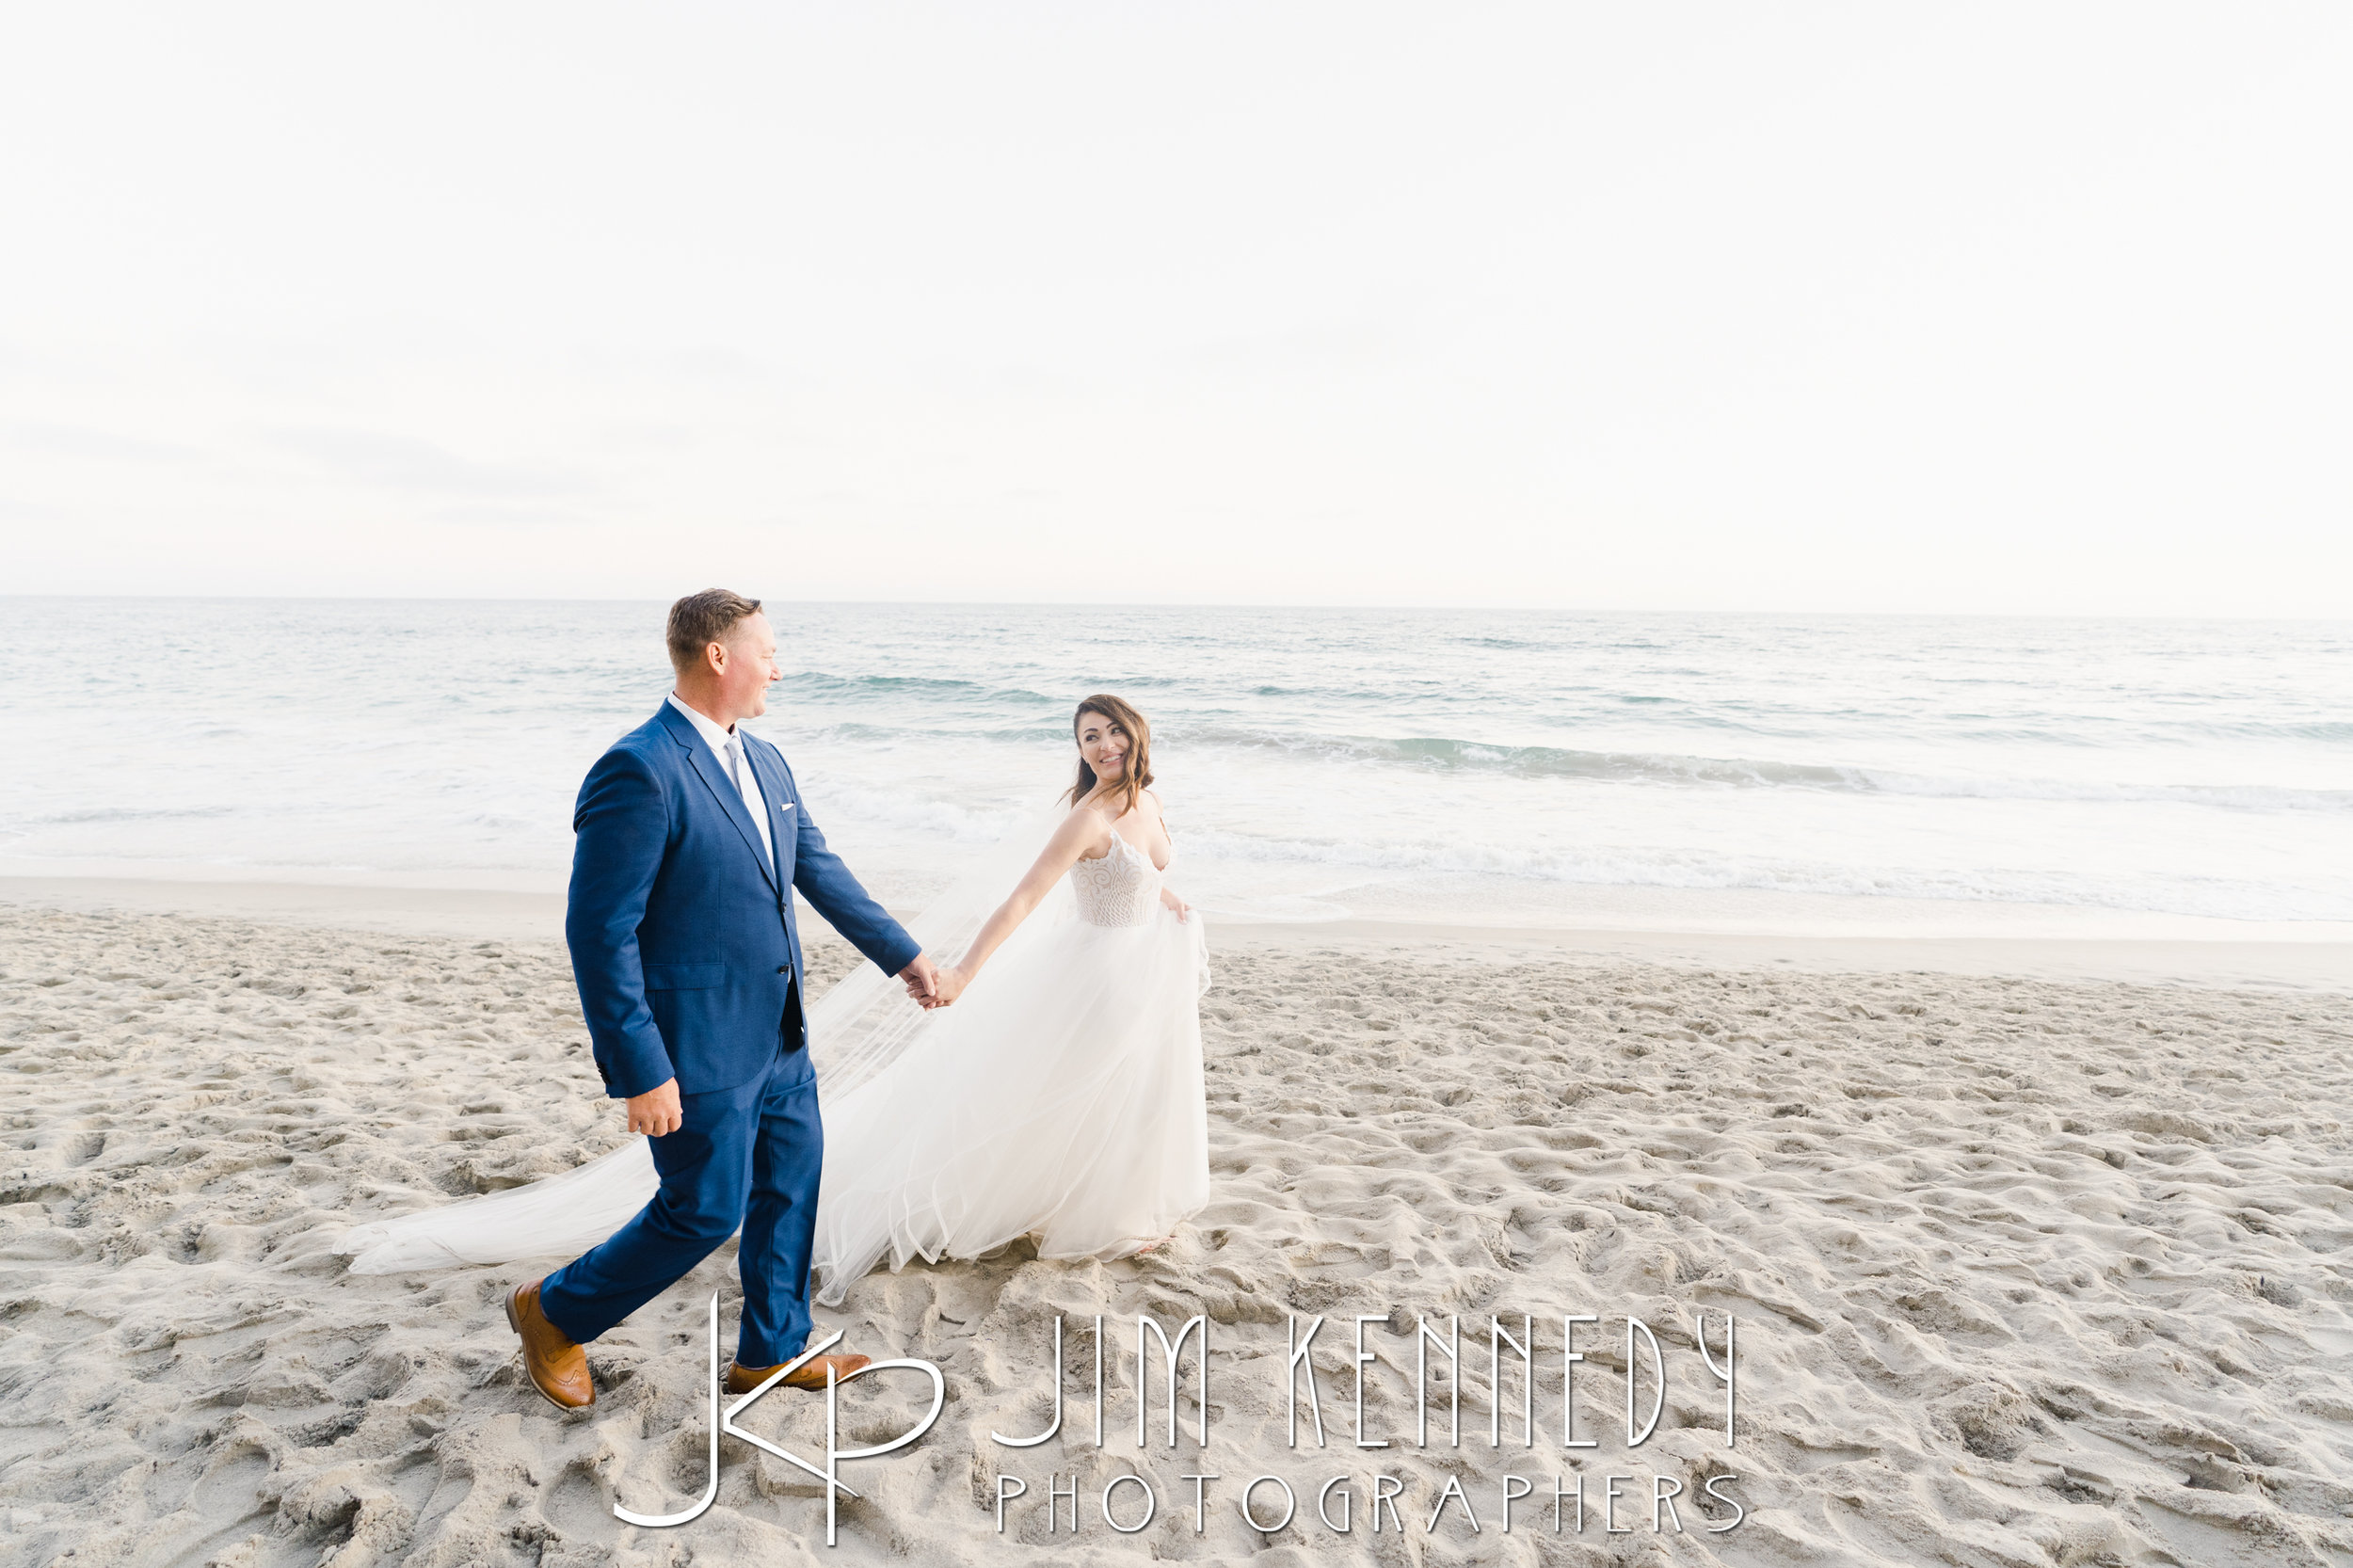 surf-and-sand-resort-wedding-erica-glenn_0205.JPG